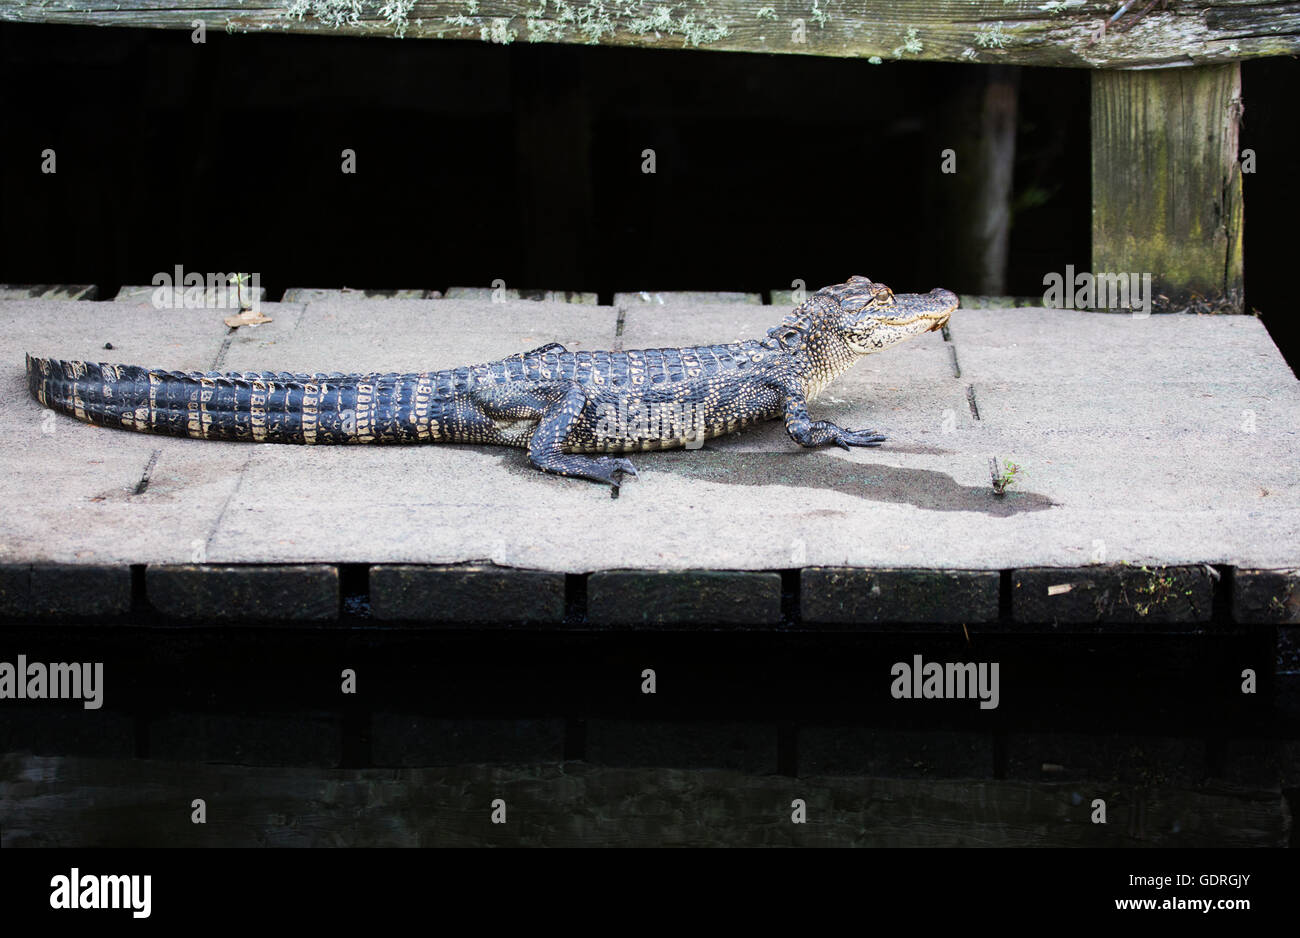 American Alligator (Alligator mississippiensis) basking on dock of lakeshore cabin - Stock Image